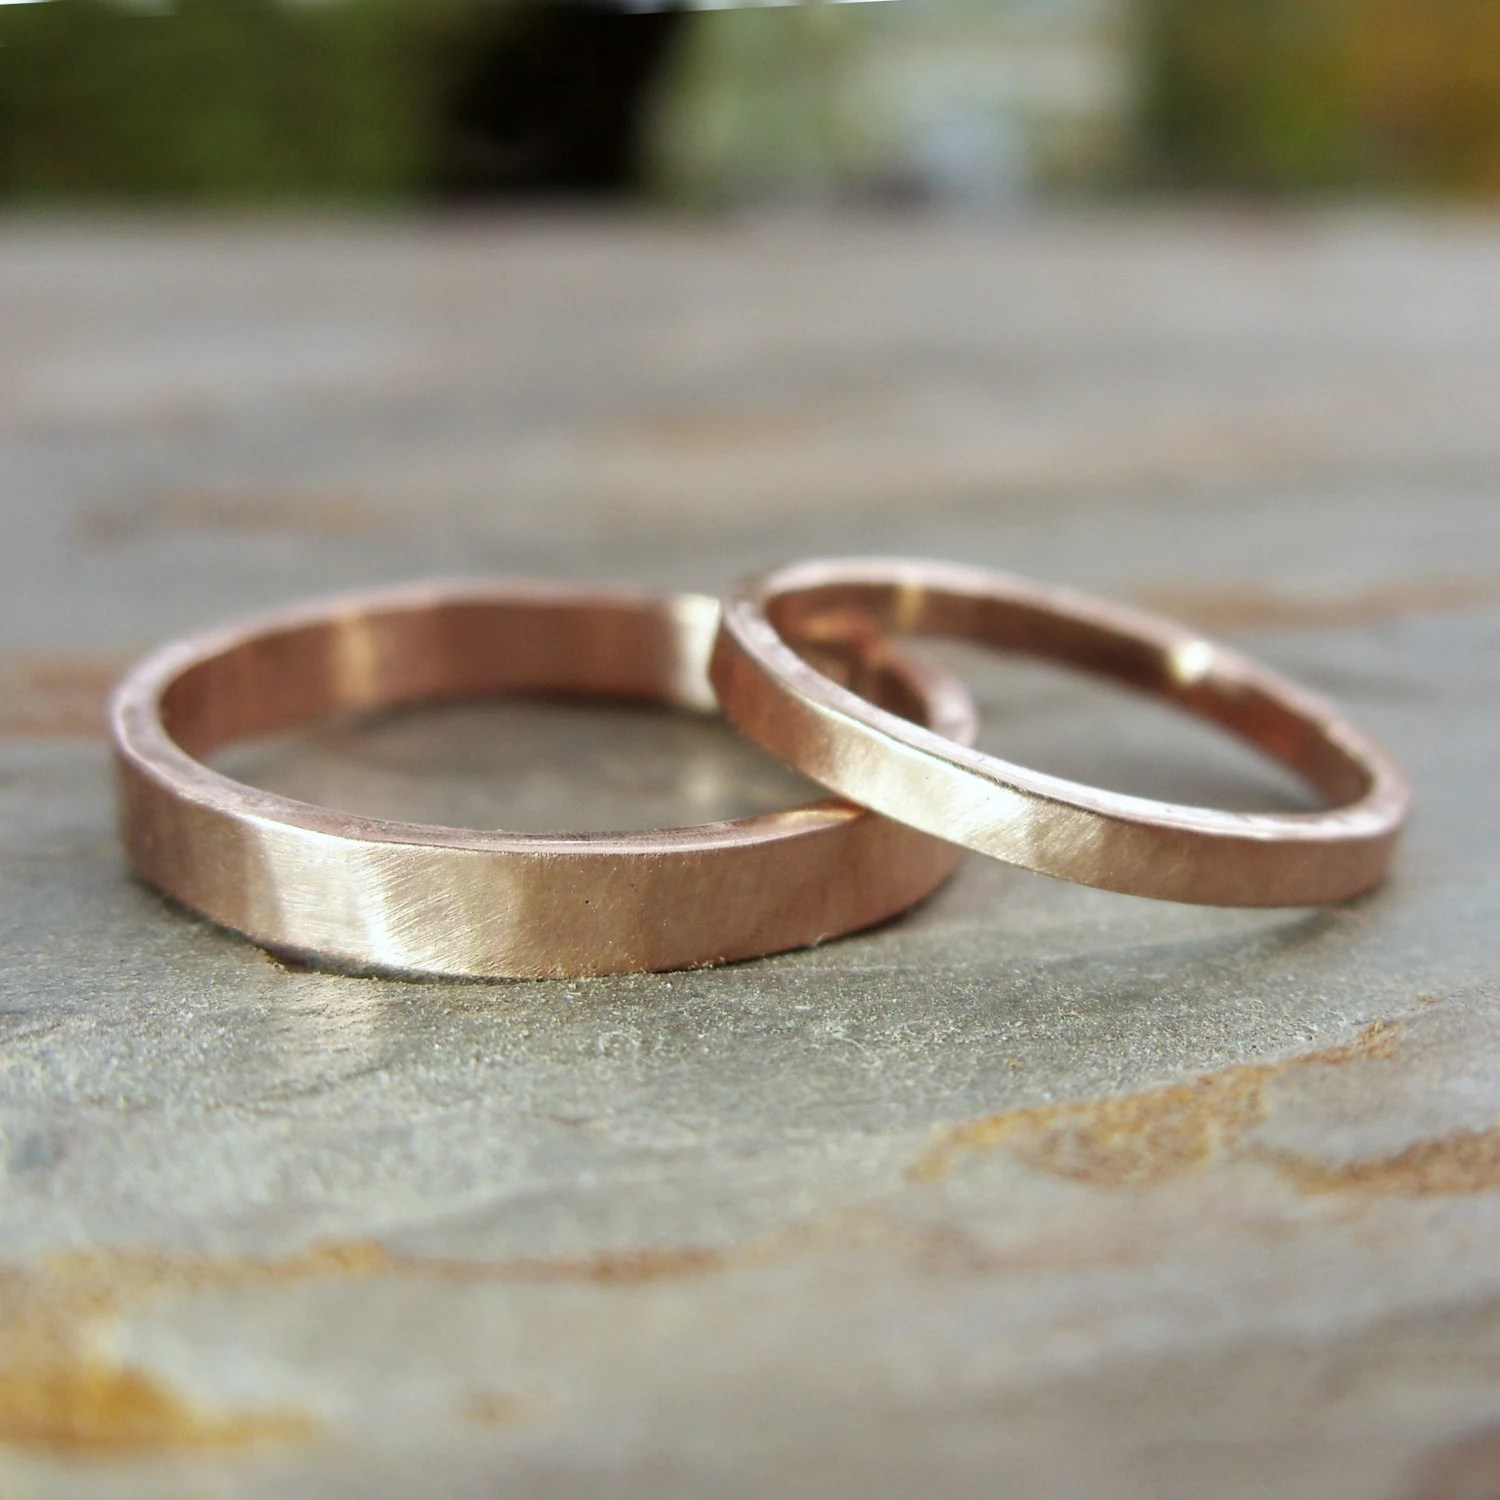 simple thin 14k rose gold wedding band matching wedding bands Hammered Matching Wedding Band Set in Solid 14k Yellow or Rose Gold Flat Bands in 2mm and 3mm Choose Polished or Matte Finish